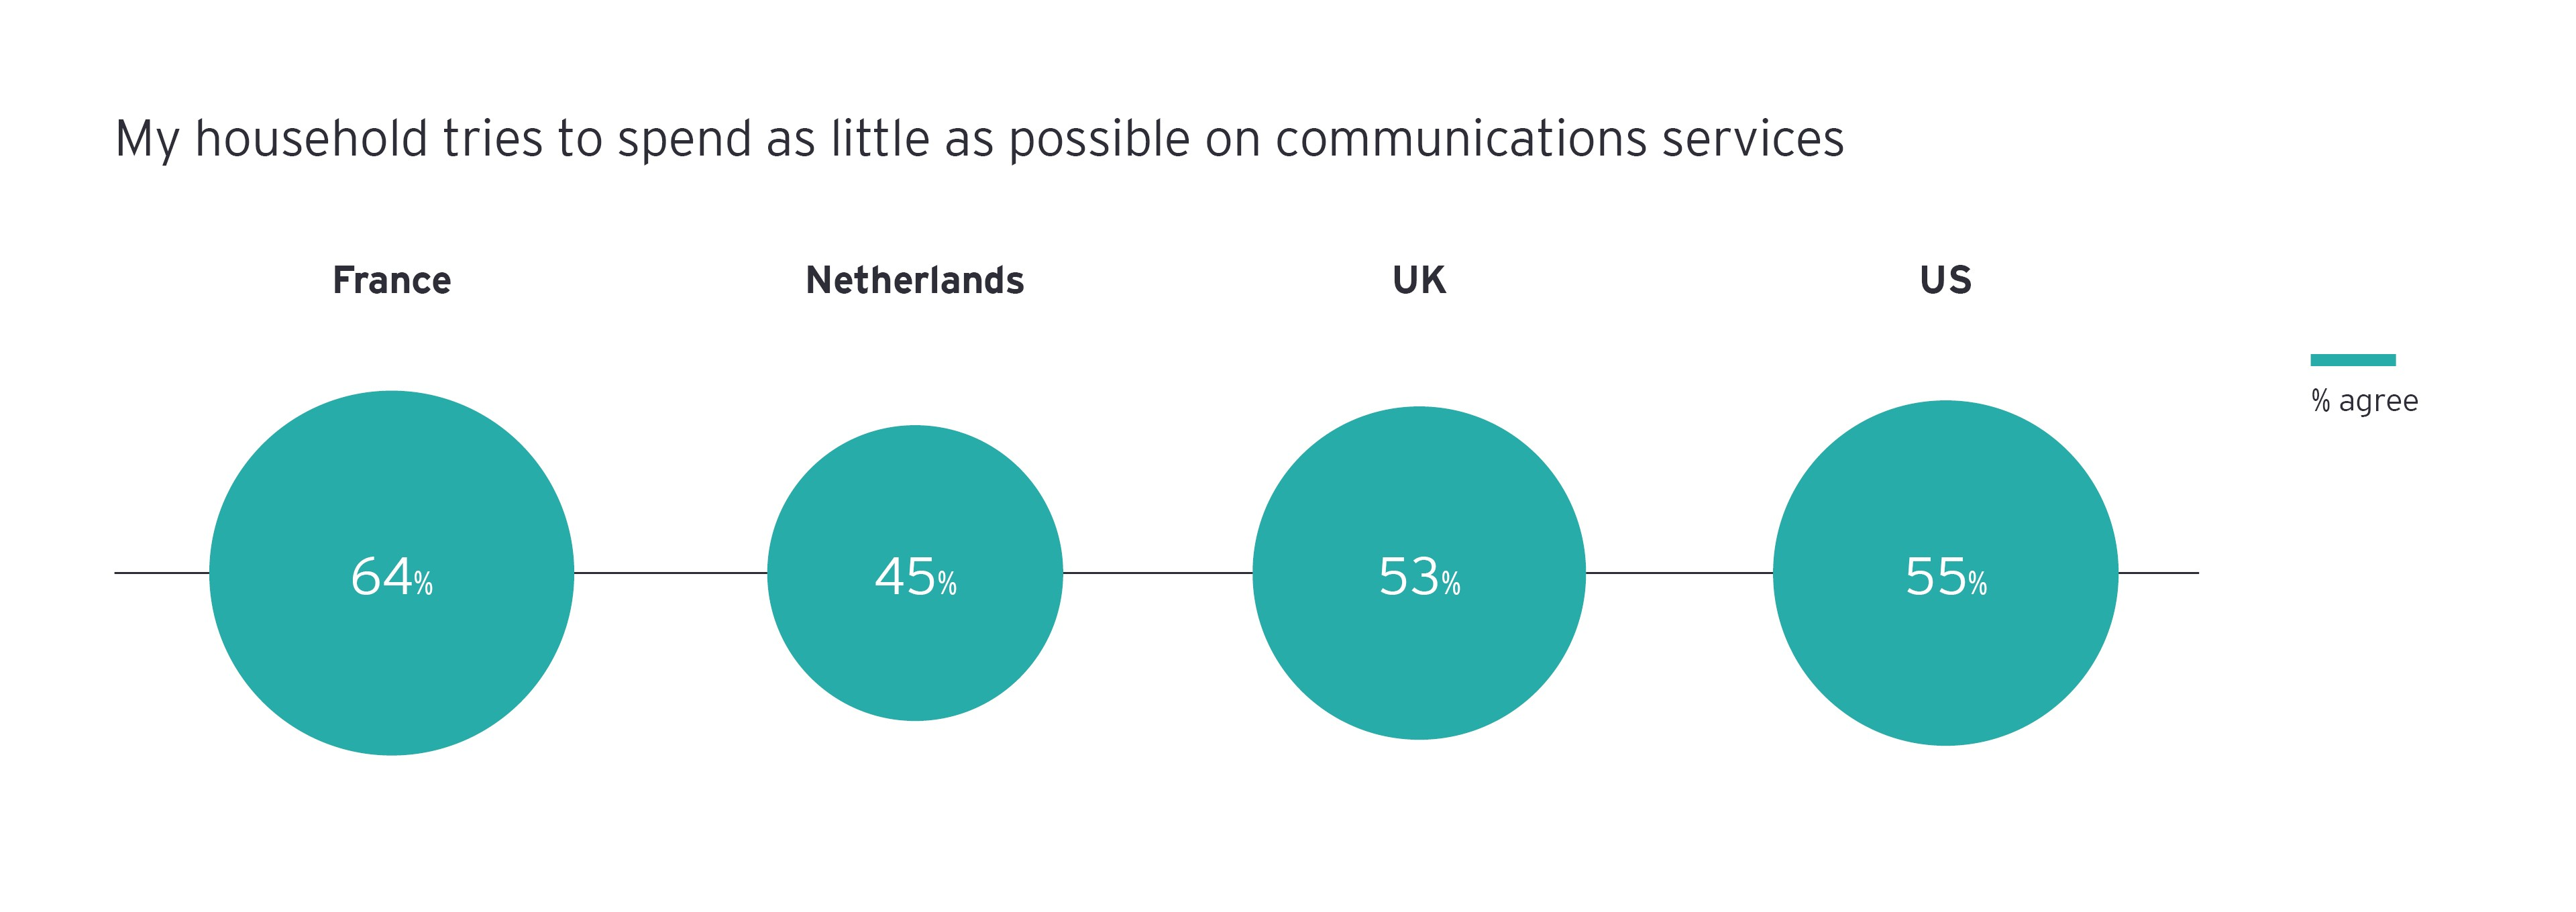 spends as little as possible on communications services infograph